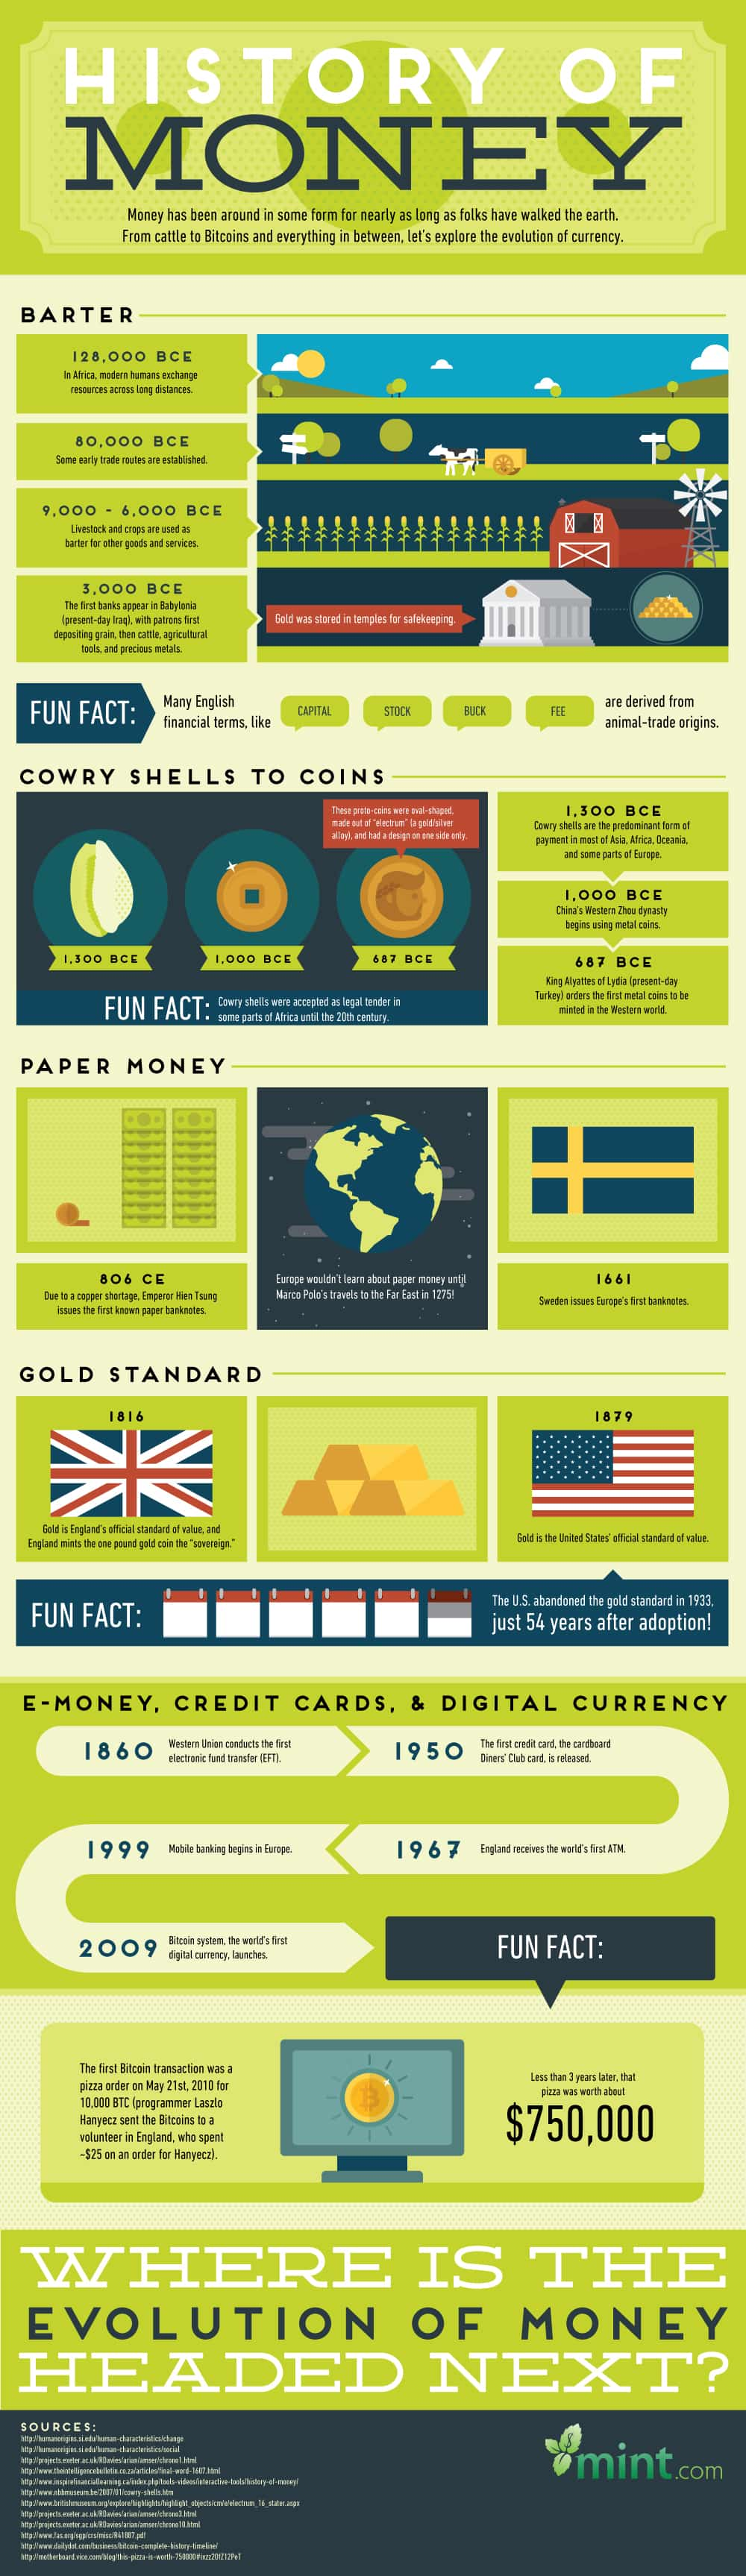 The History of Money: A Visual Guide to the Evolution of Currency :: Mint.com/blog